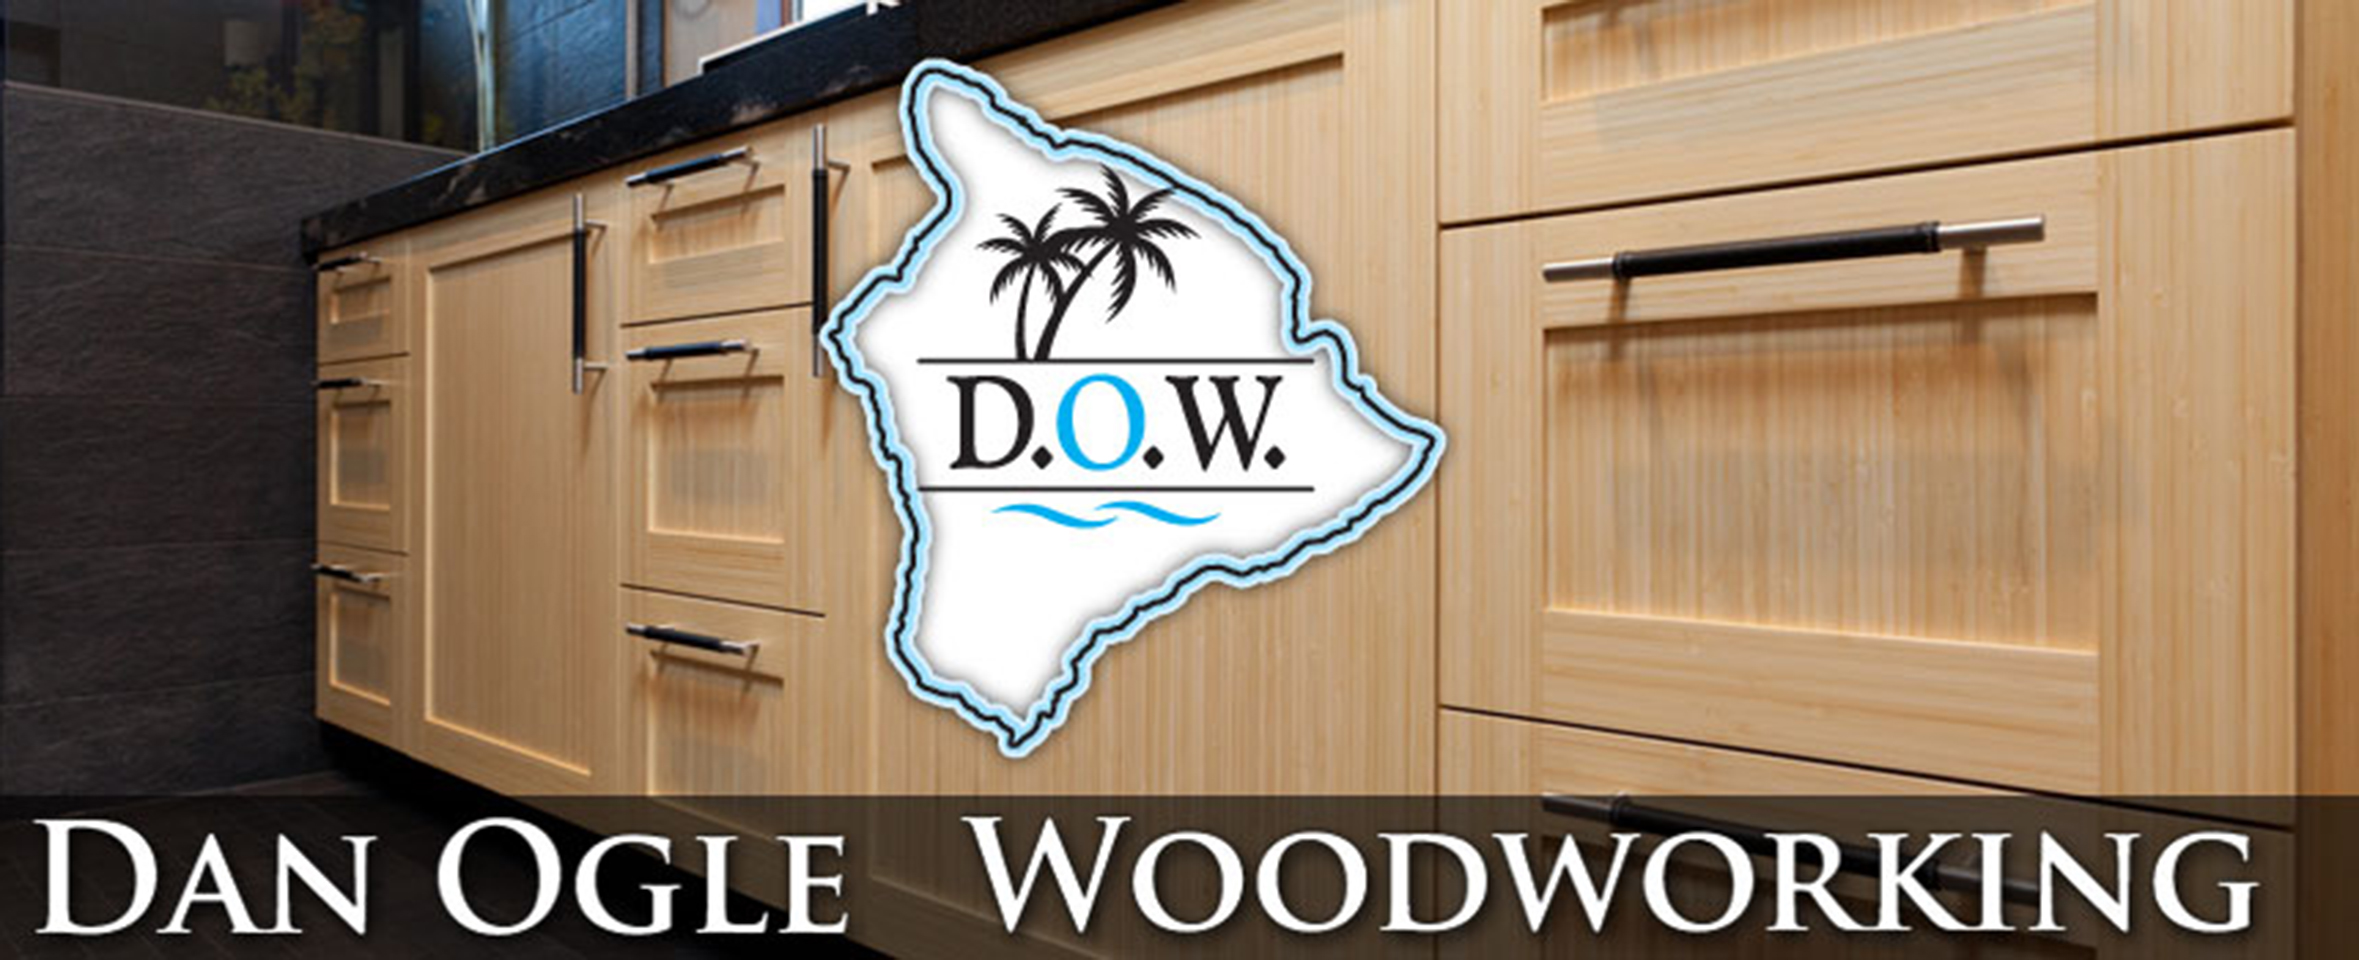 Dan Ogle Woodworking, Kailua Kona, Hawaii on the Big Island